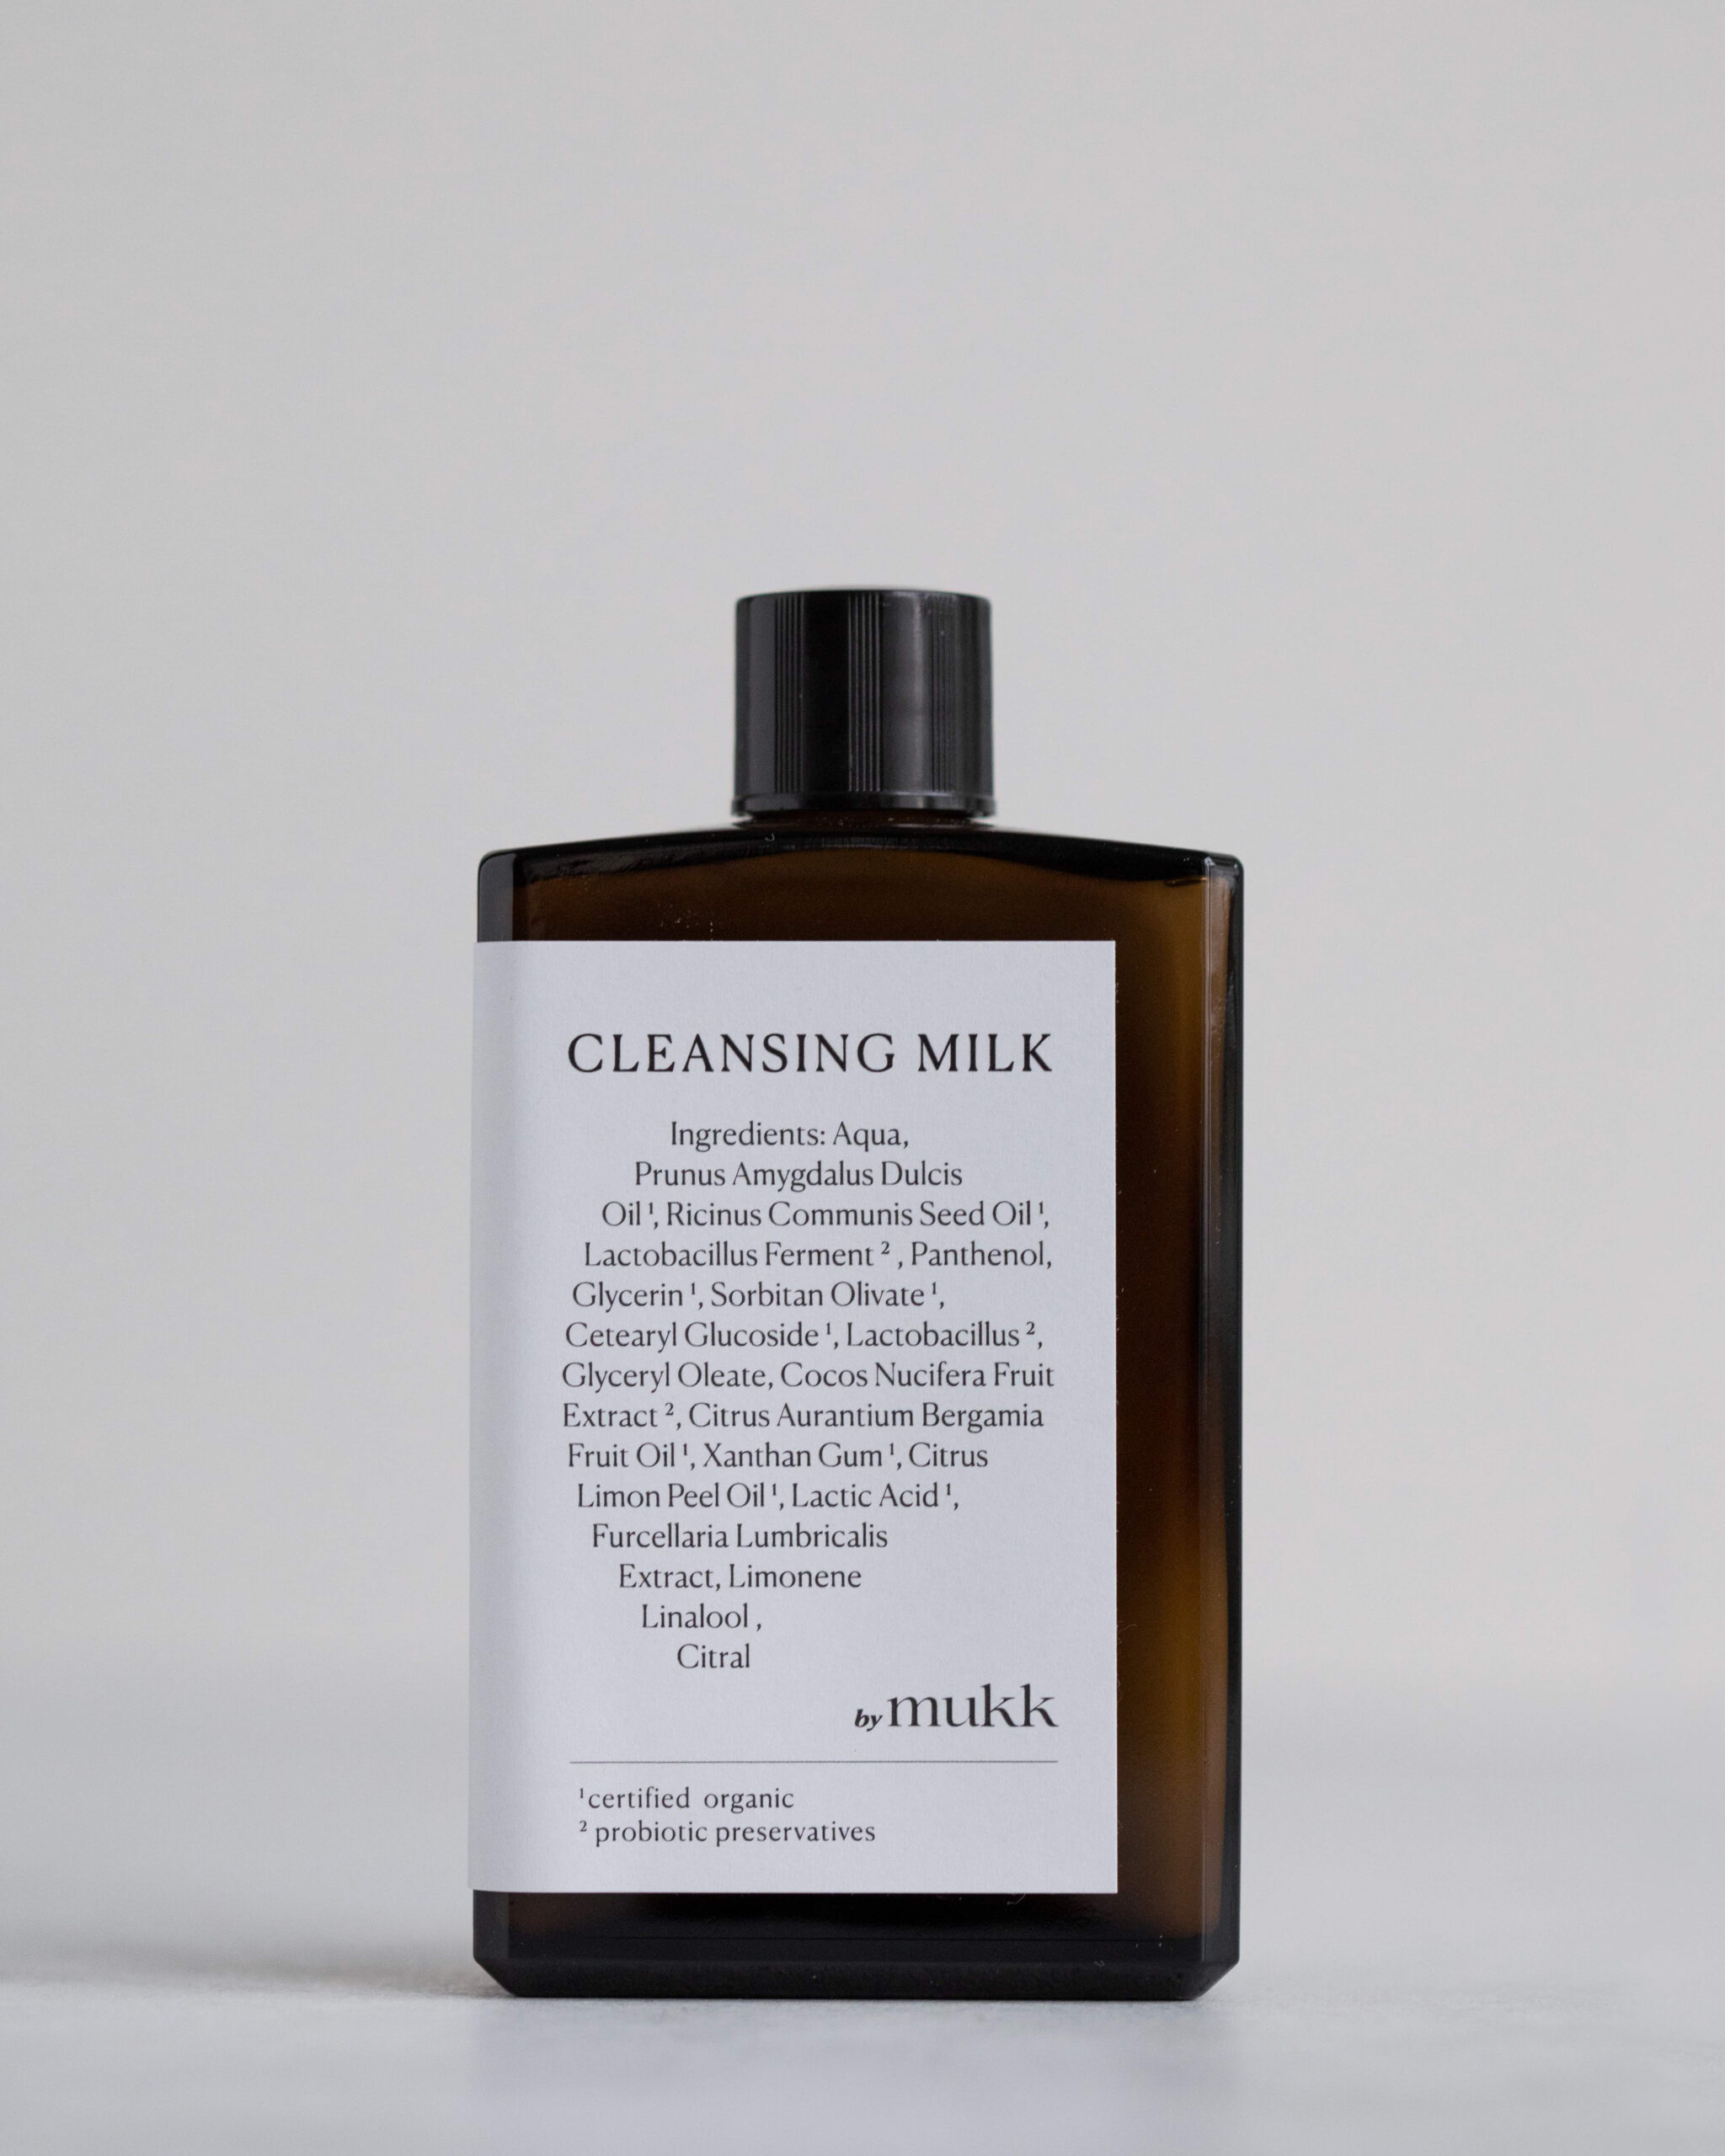 by mukk Cleansing Milk